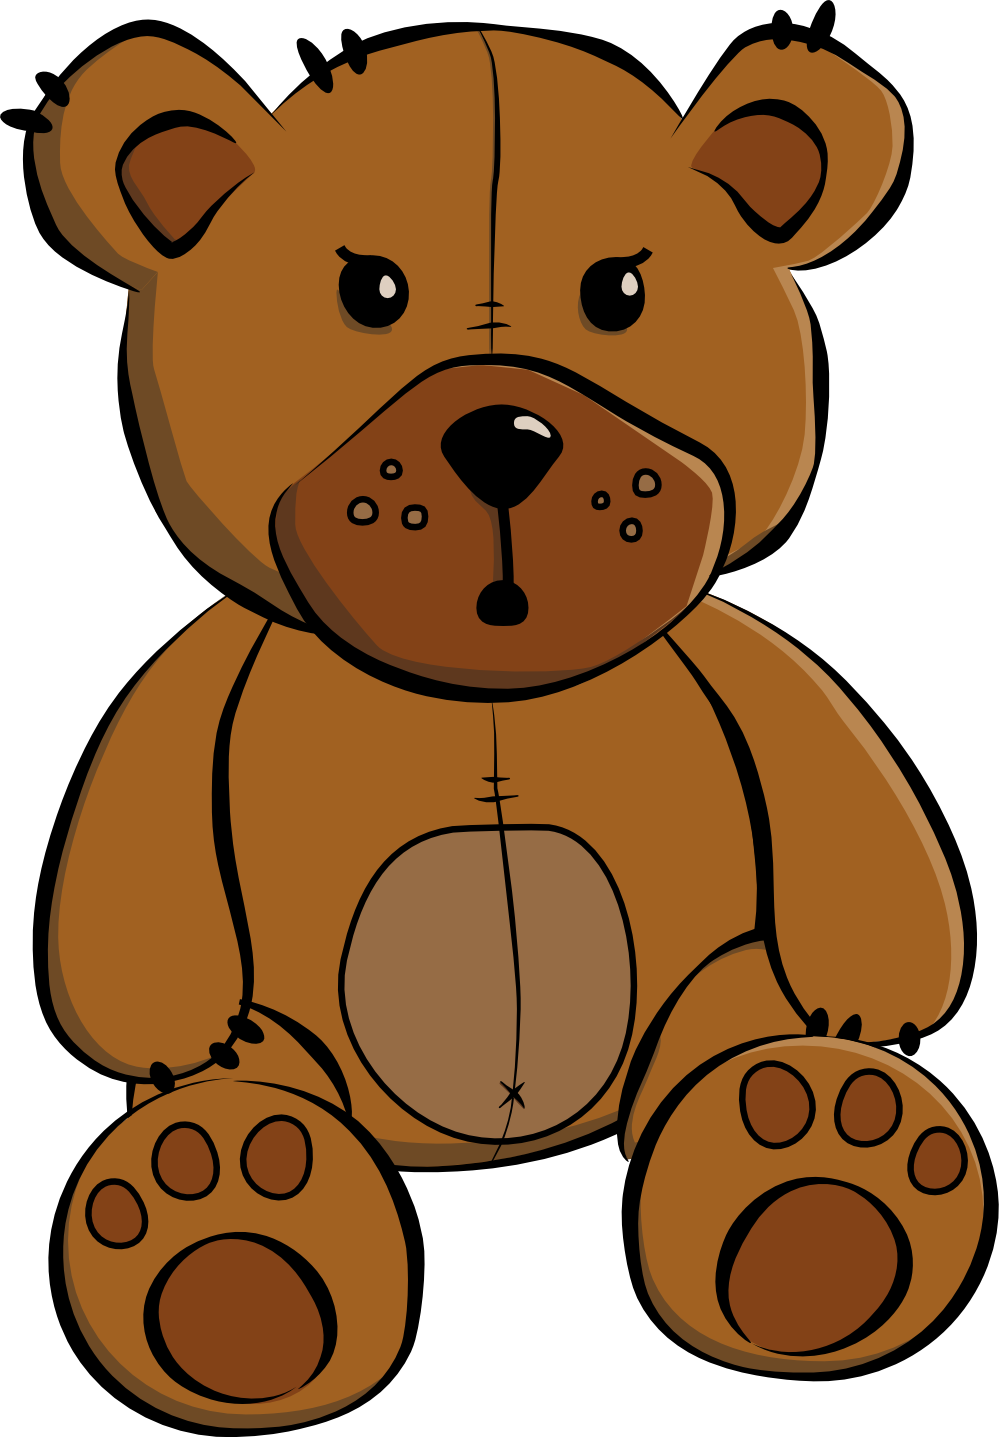 Stuffed Animal Clipart .-Stuffed Animal Clipart .-10